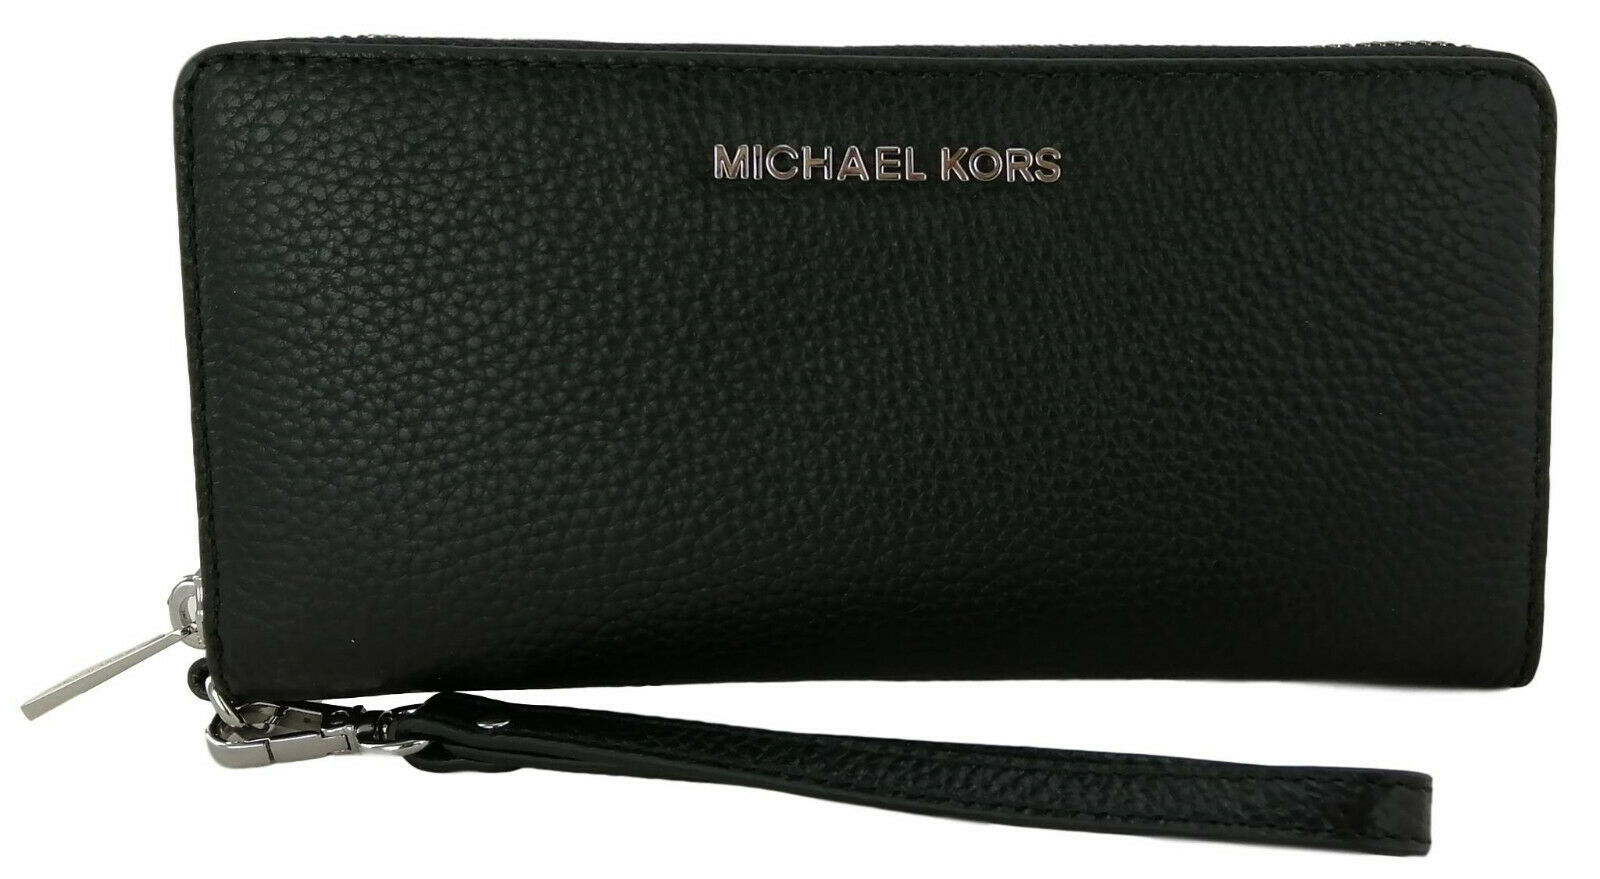 Primary image for Michael Kors Purse Wallet Wristlet Zip Around Black Large Pebbled Leather